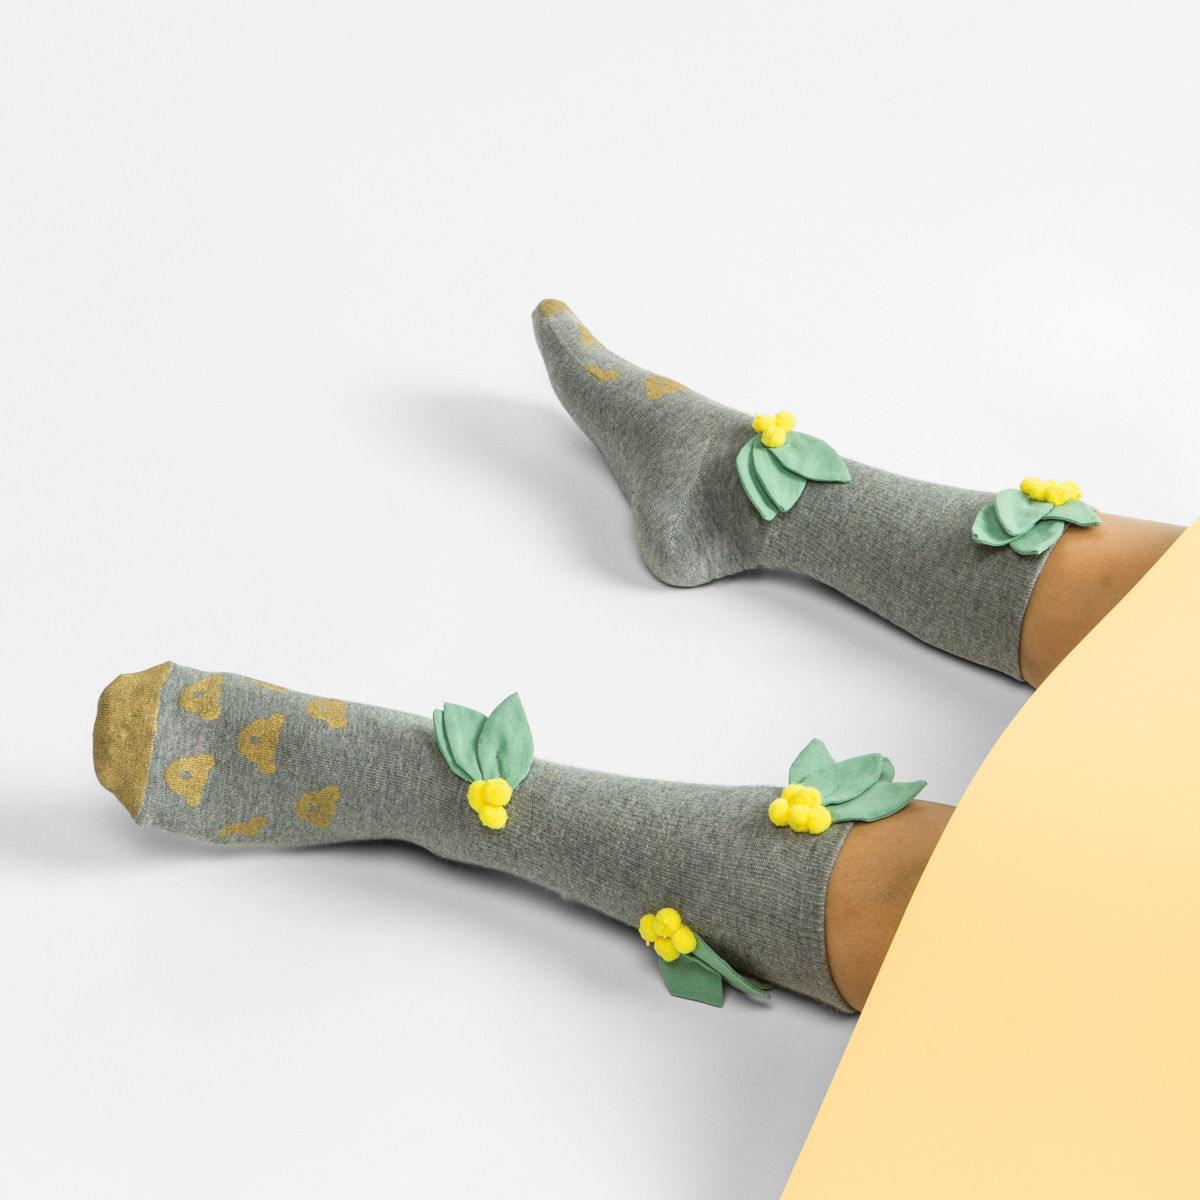 FrankieMag must-have socks green leaves http://weirdatheart.com/absolutely-must-have-socks/